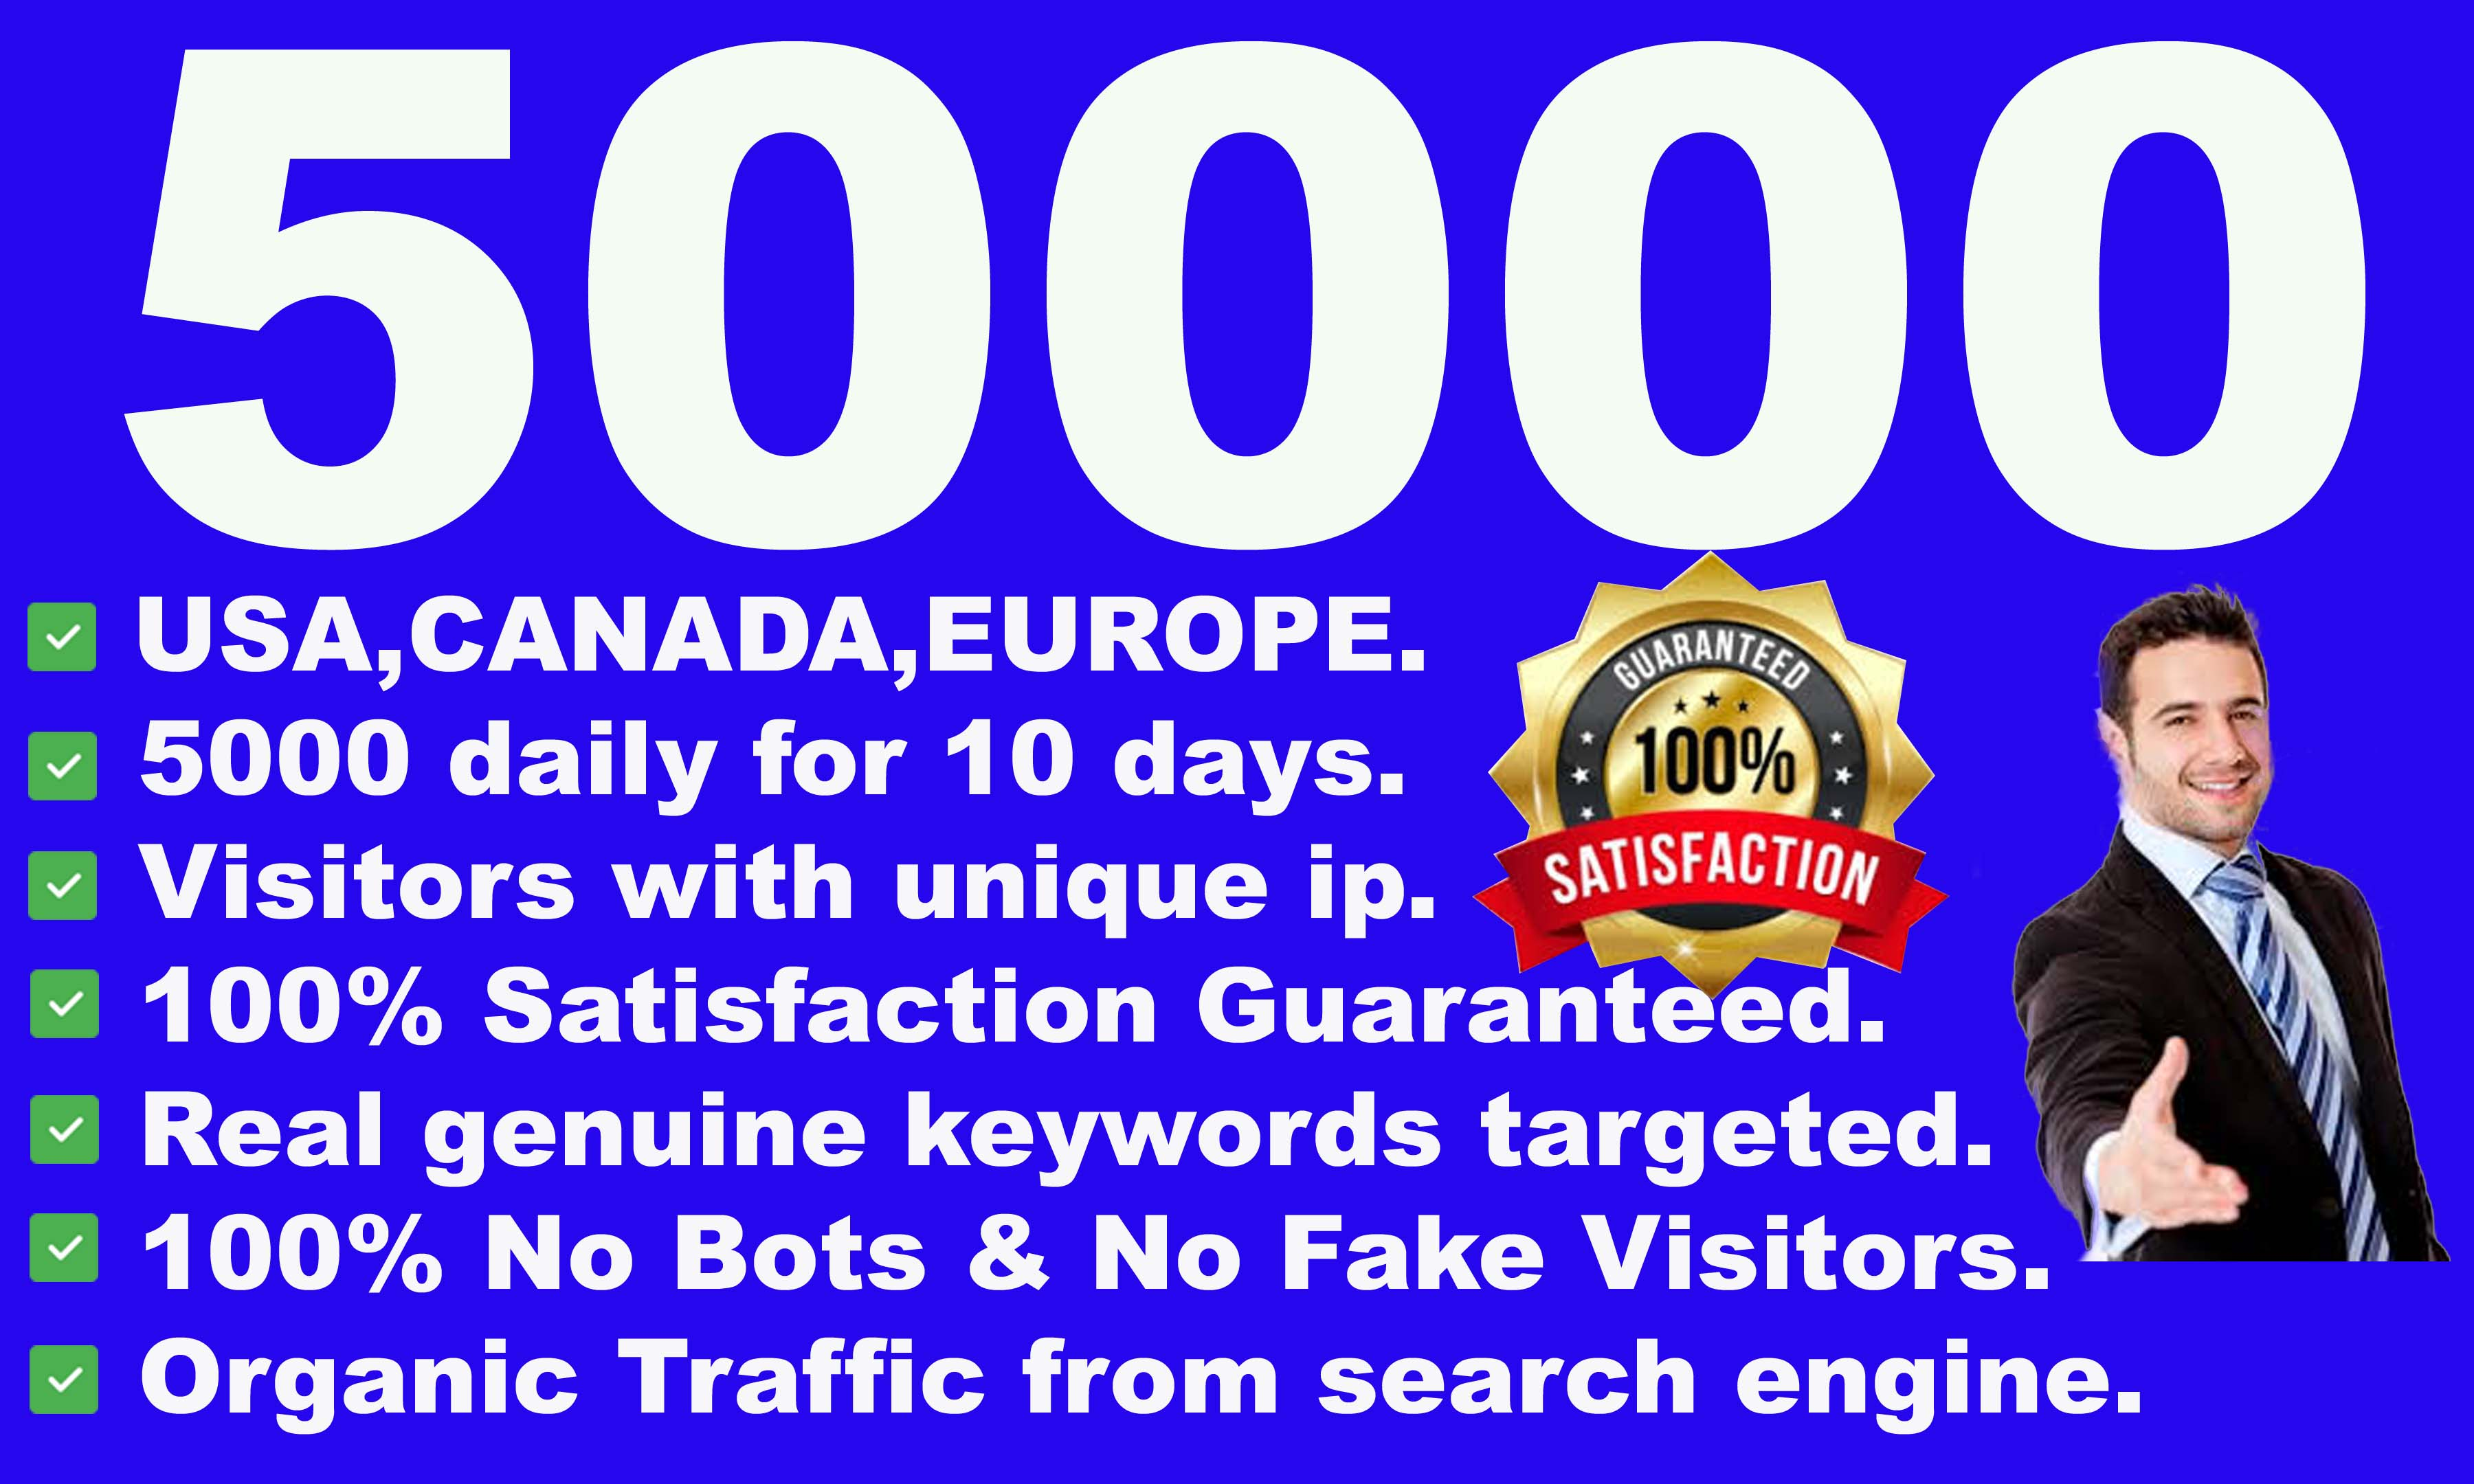 I will drive 50000 real visitors from USA, CANADA, EUROPE